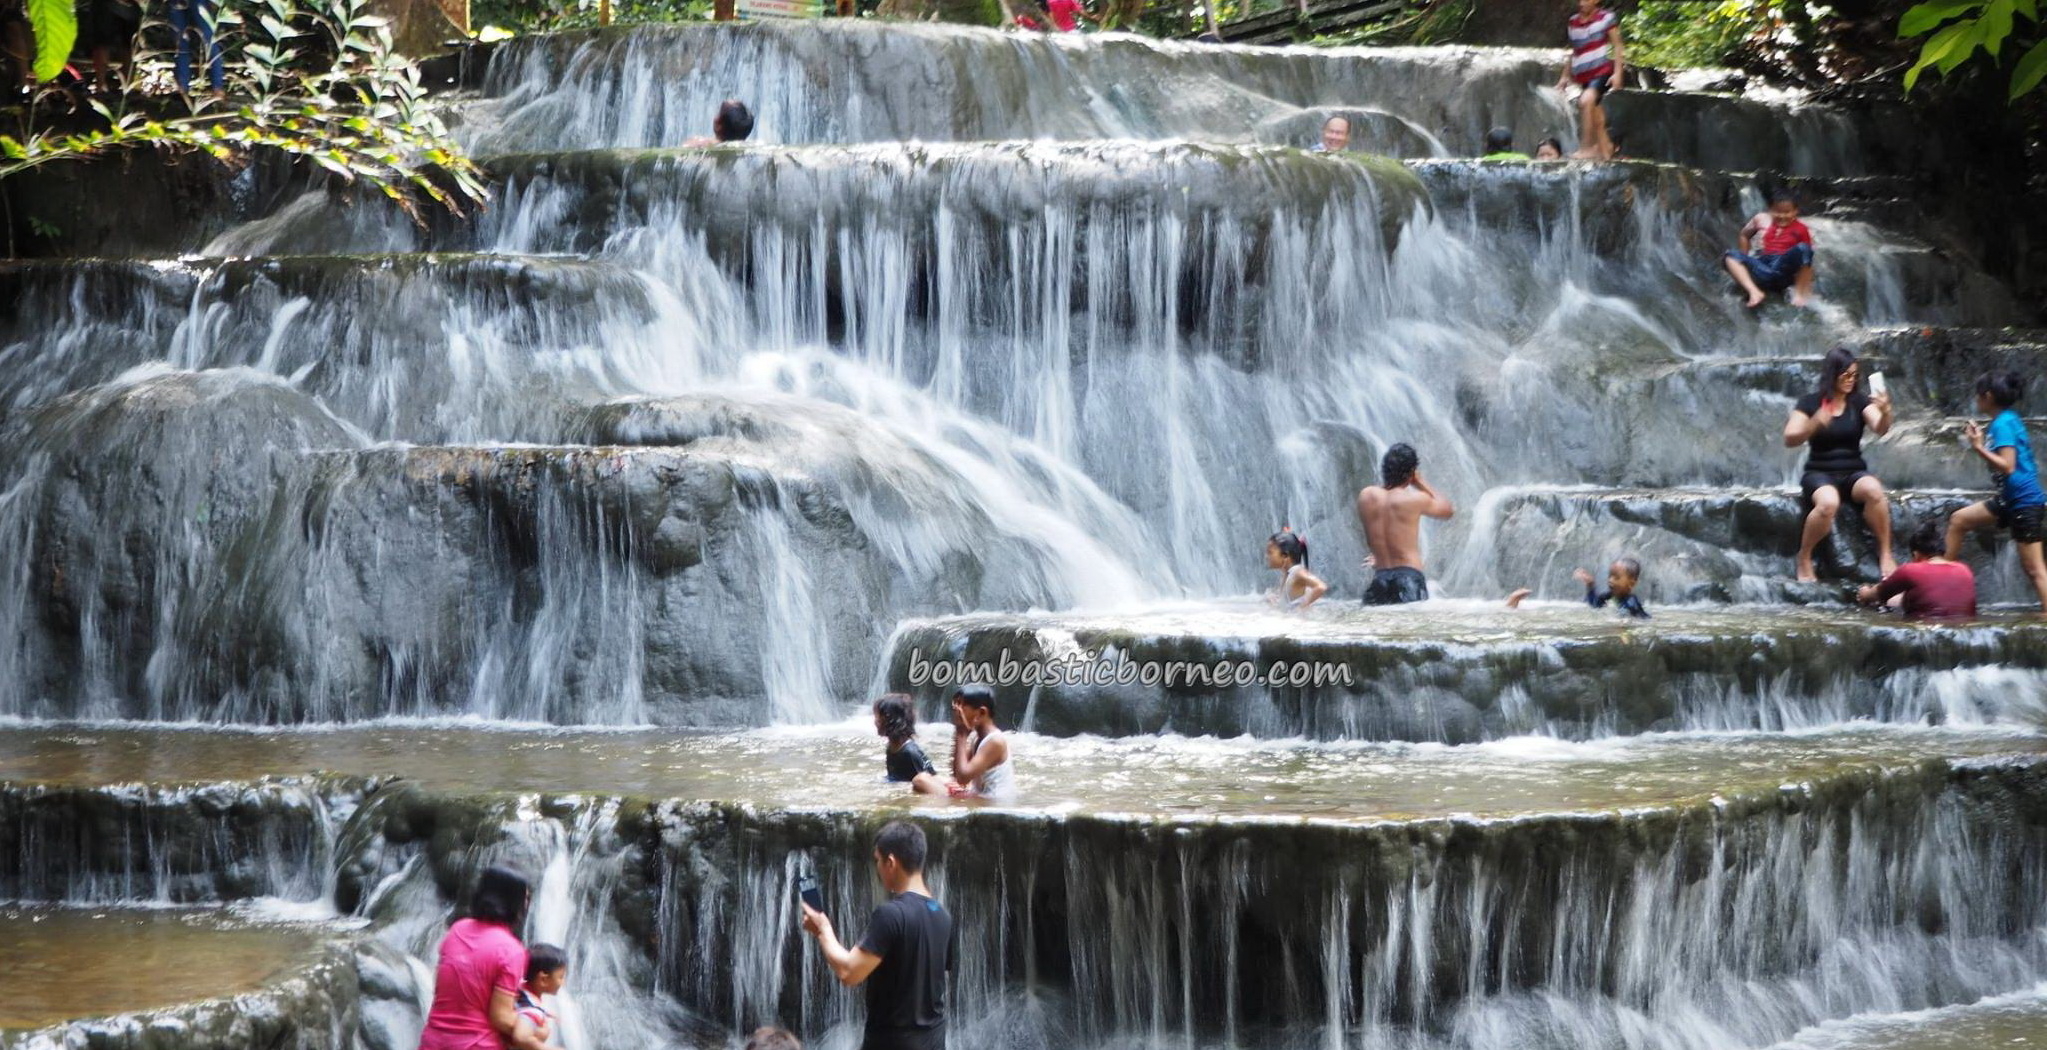 Air Terjun, Cascade, air panas, outdoor, backpackers, Indonesia, Kalimantan Utara, Mentarang, hidden paradise, family vacation, Obyek wisata, tourist attraction, travel guide, transborder, 北加里曼丹, 婆罗洲瀑布